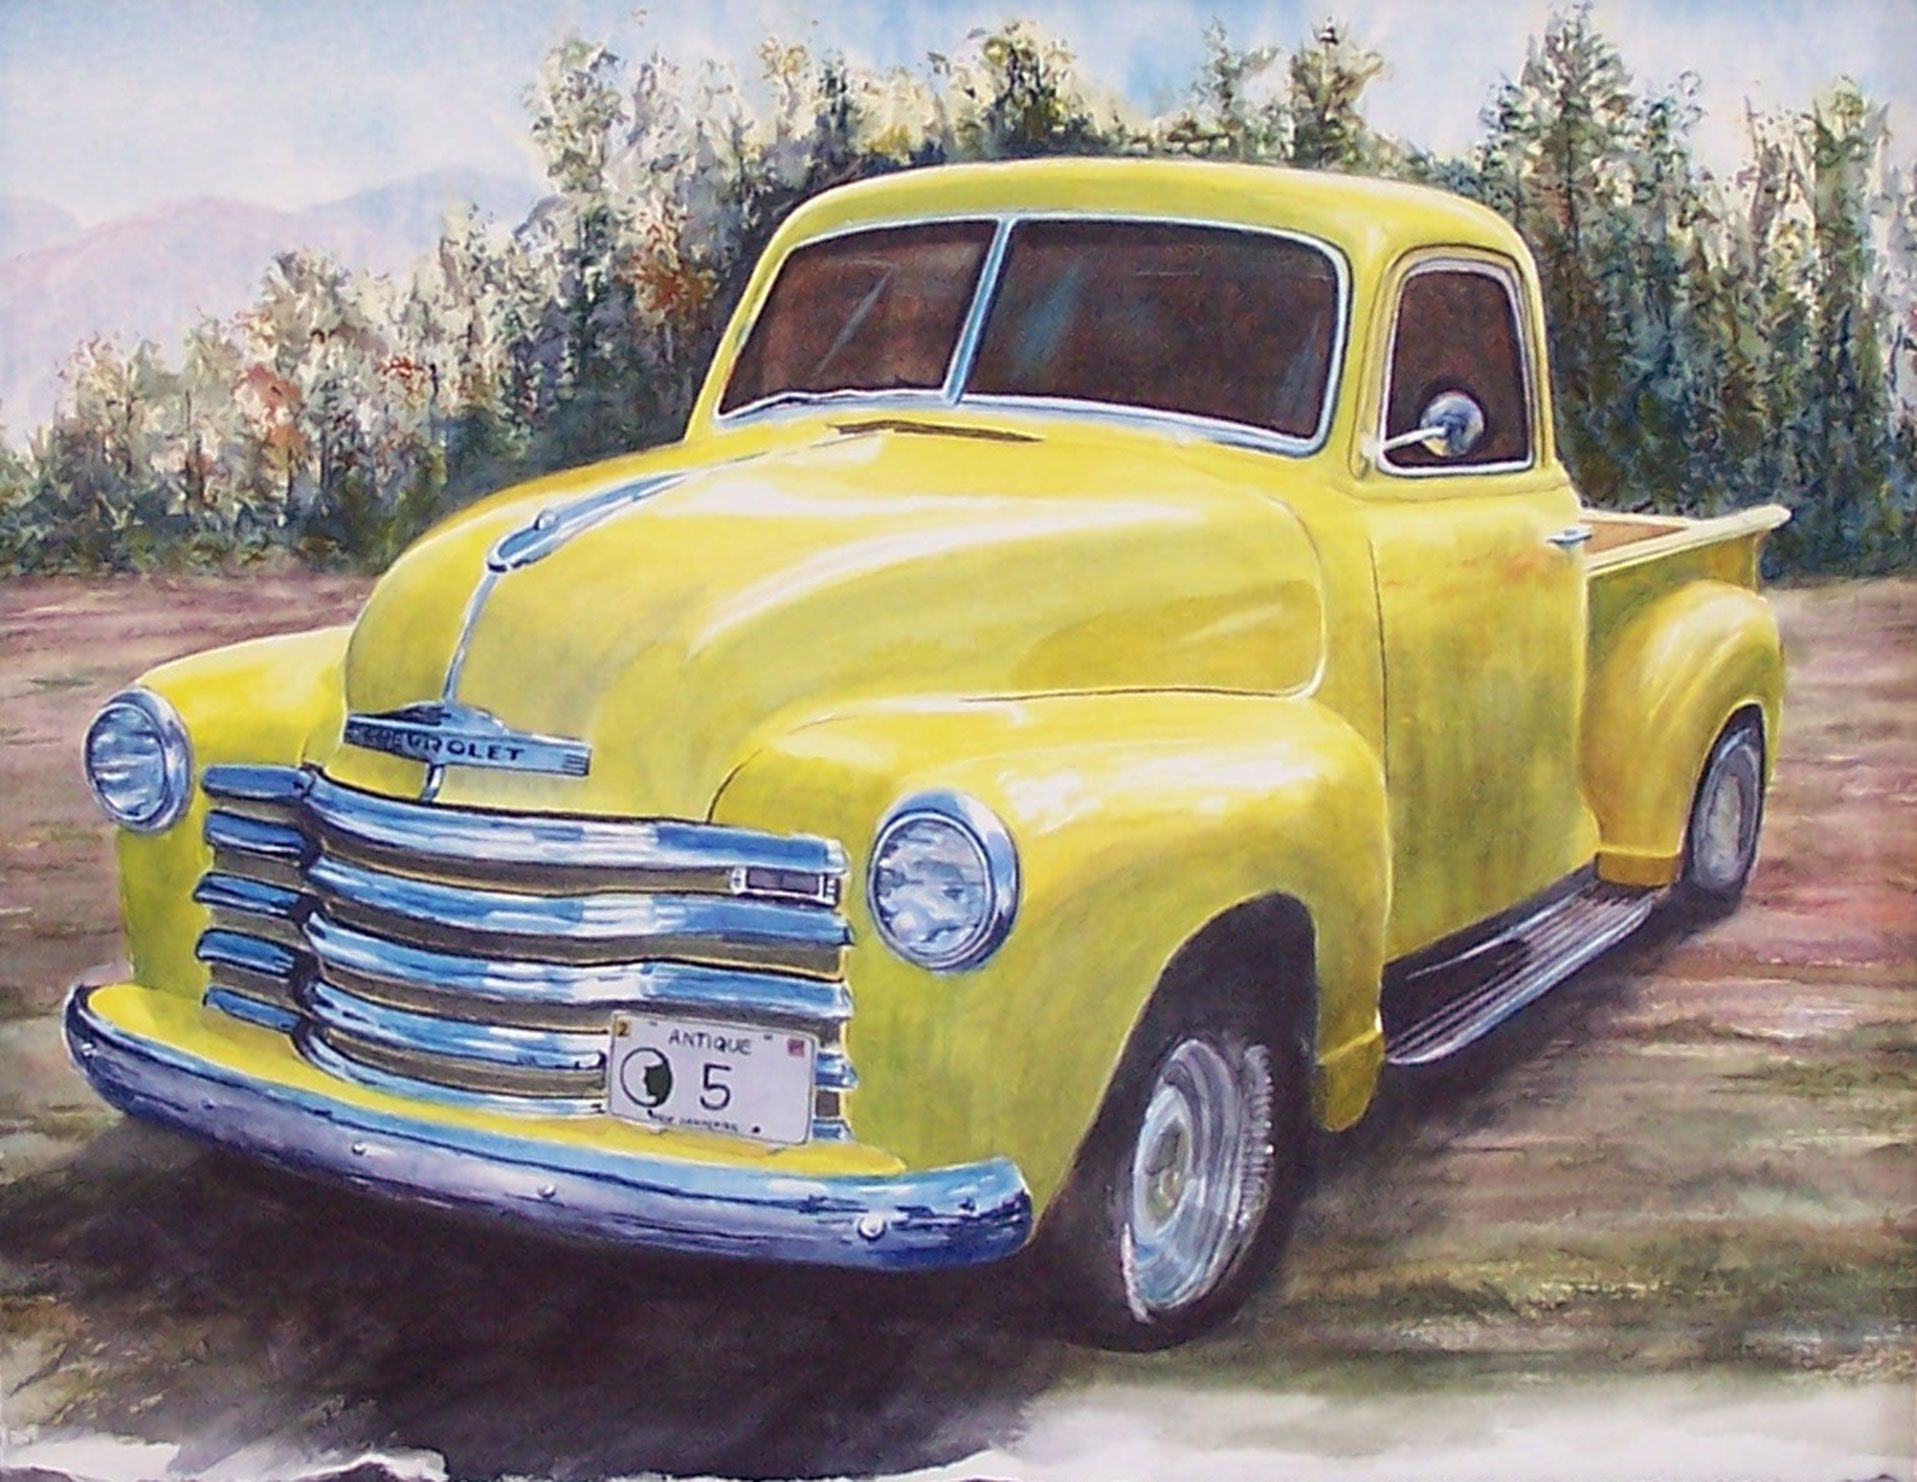 Fabulous Old Yellow Truck | COOL CARS and Trucks | Pinterest | Cars ...